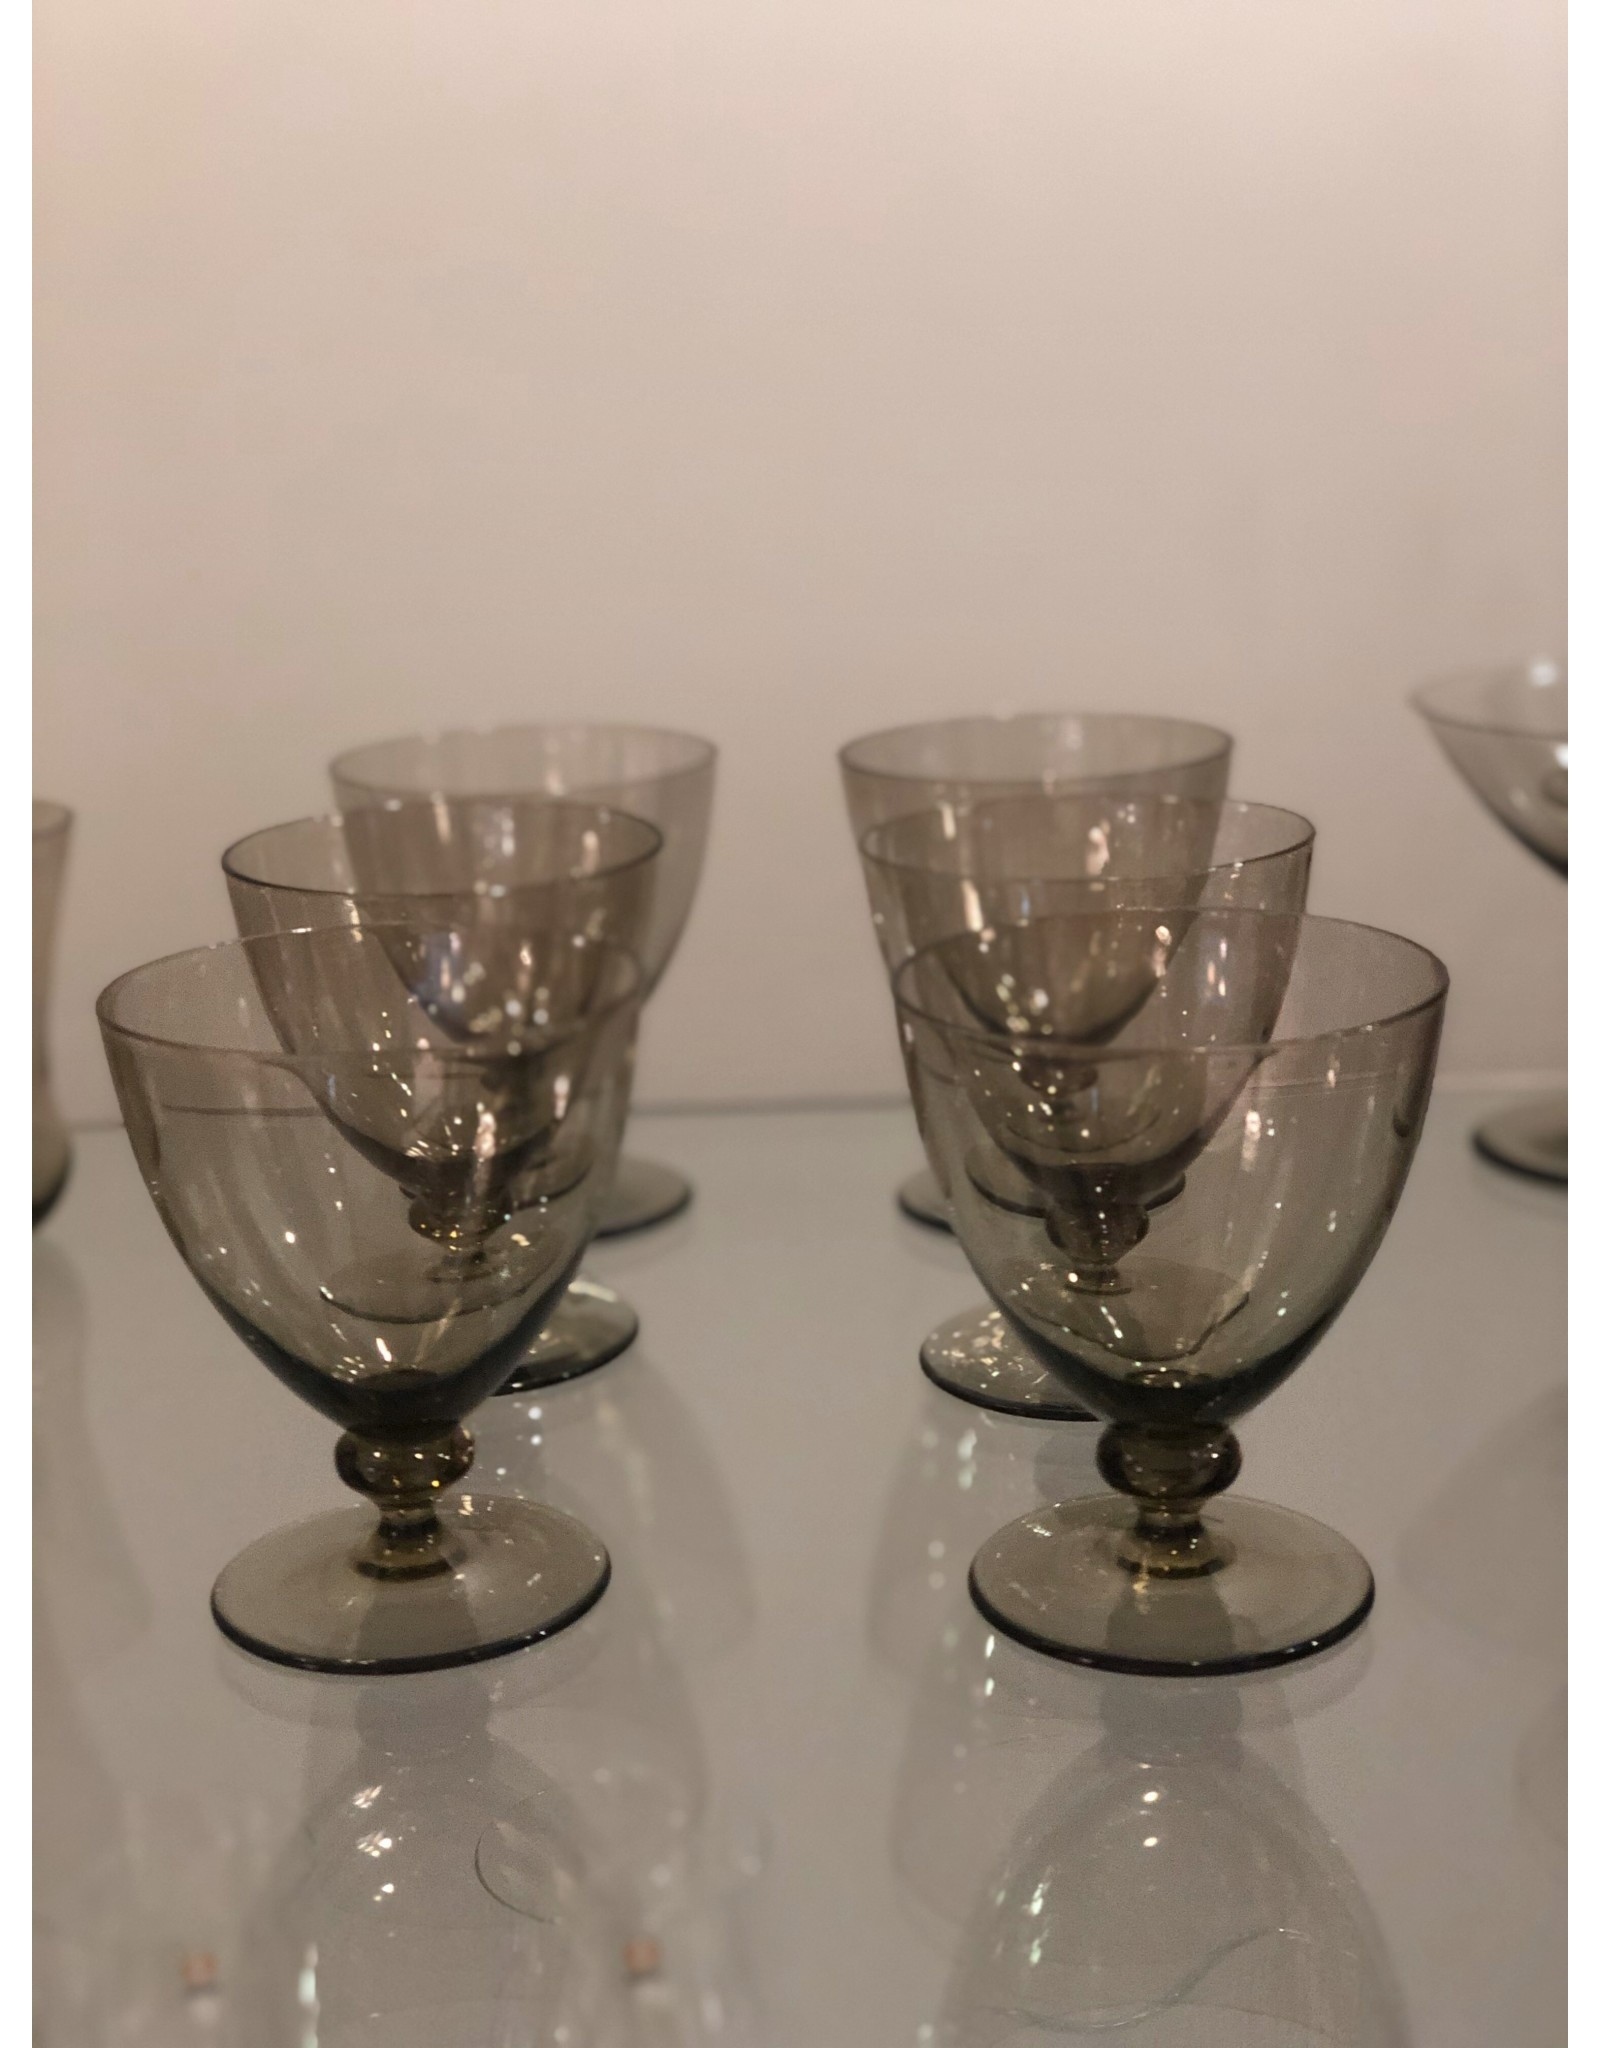 1930's SMOKED GLASS SERVICE FOR 6 PERSONS (24 PIECES)